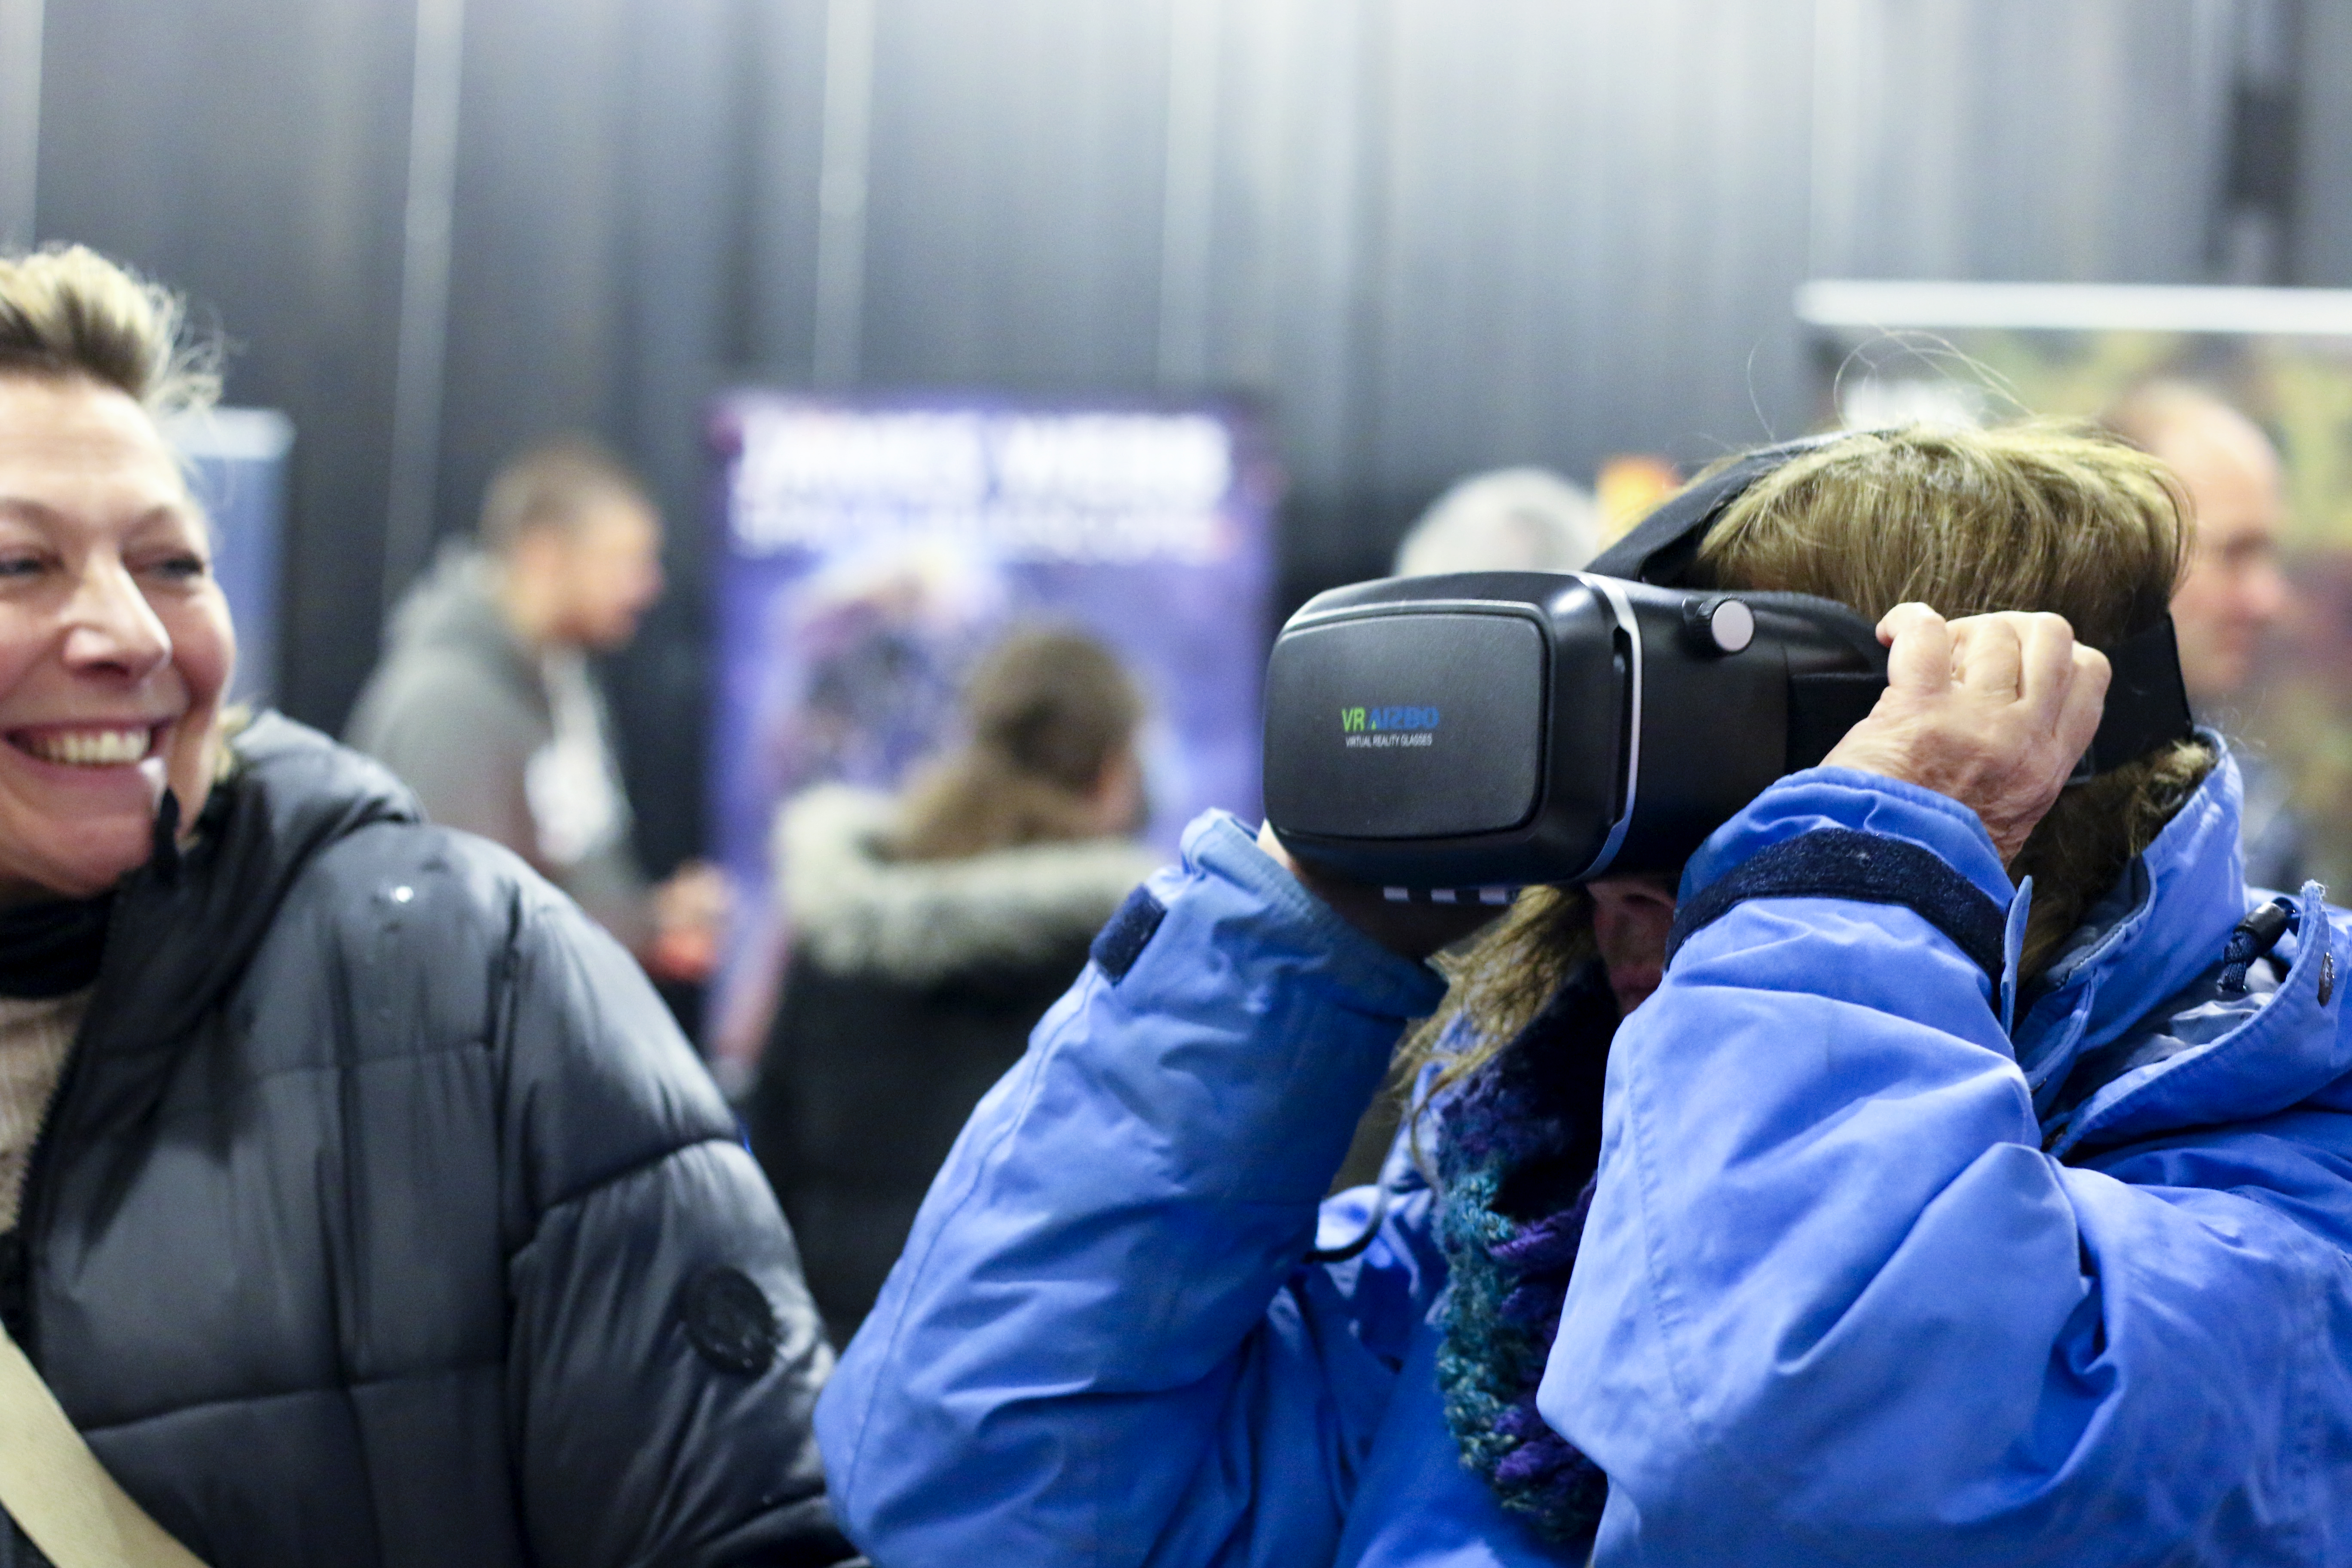 People using VR headsets at Space at The Stade, Hastings